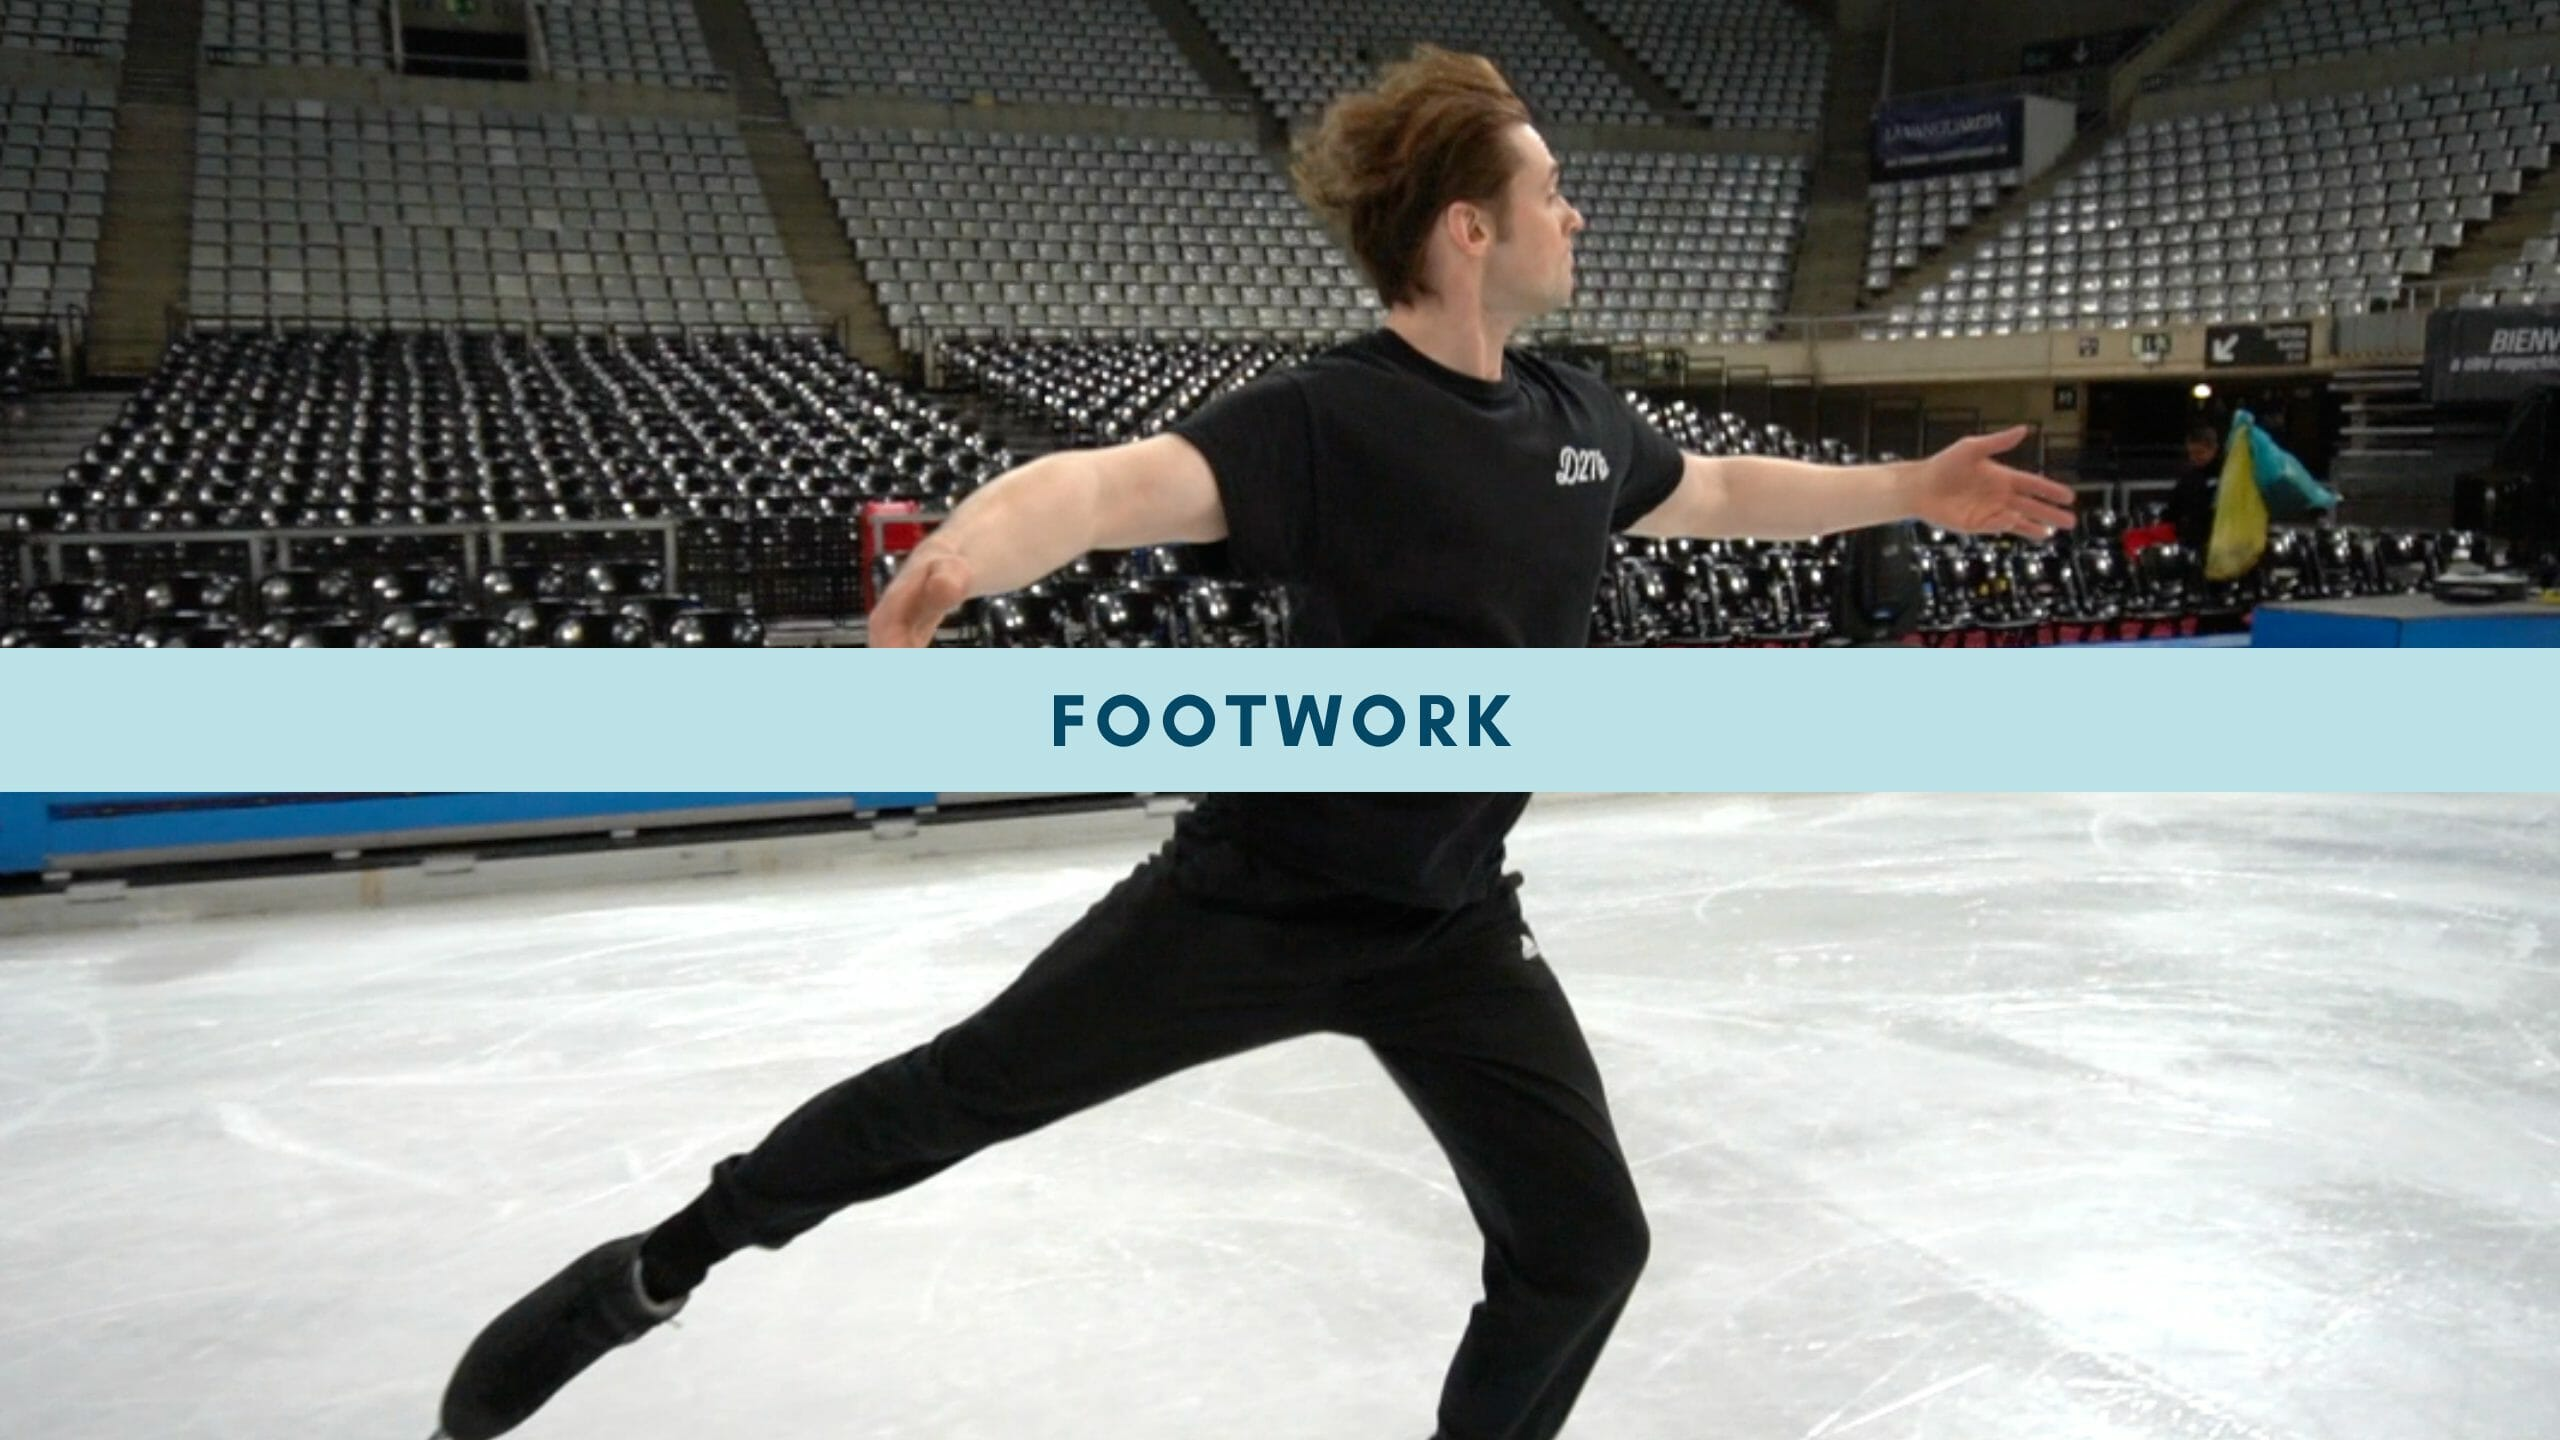 Footwork Ice Coach Online